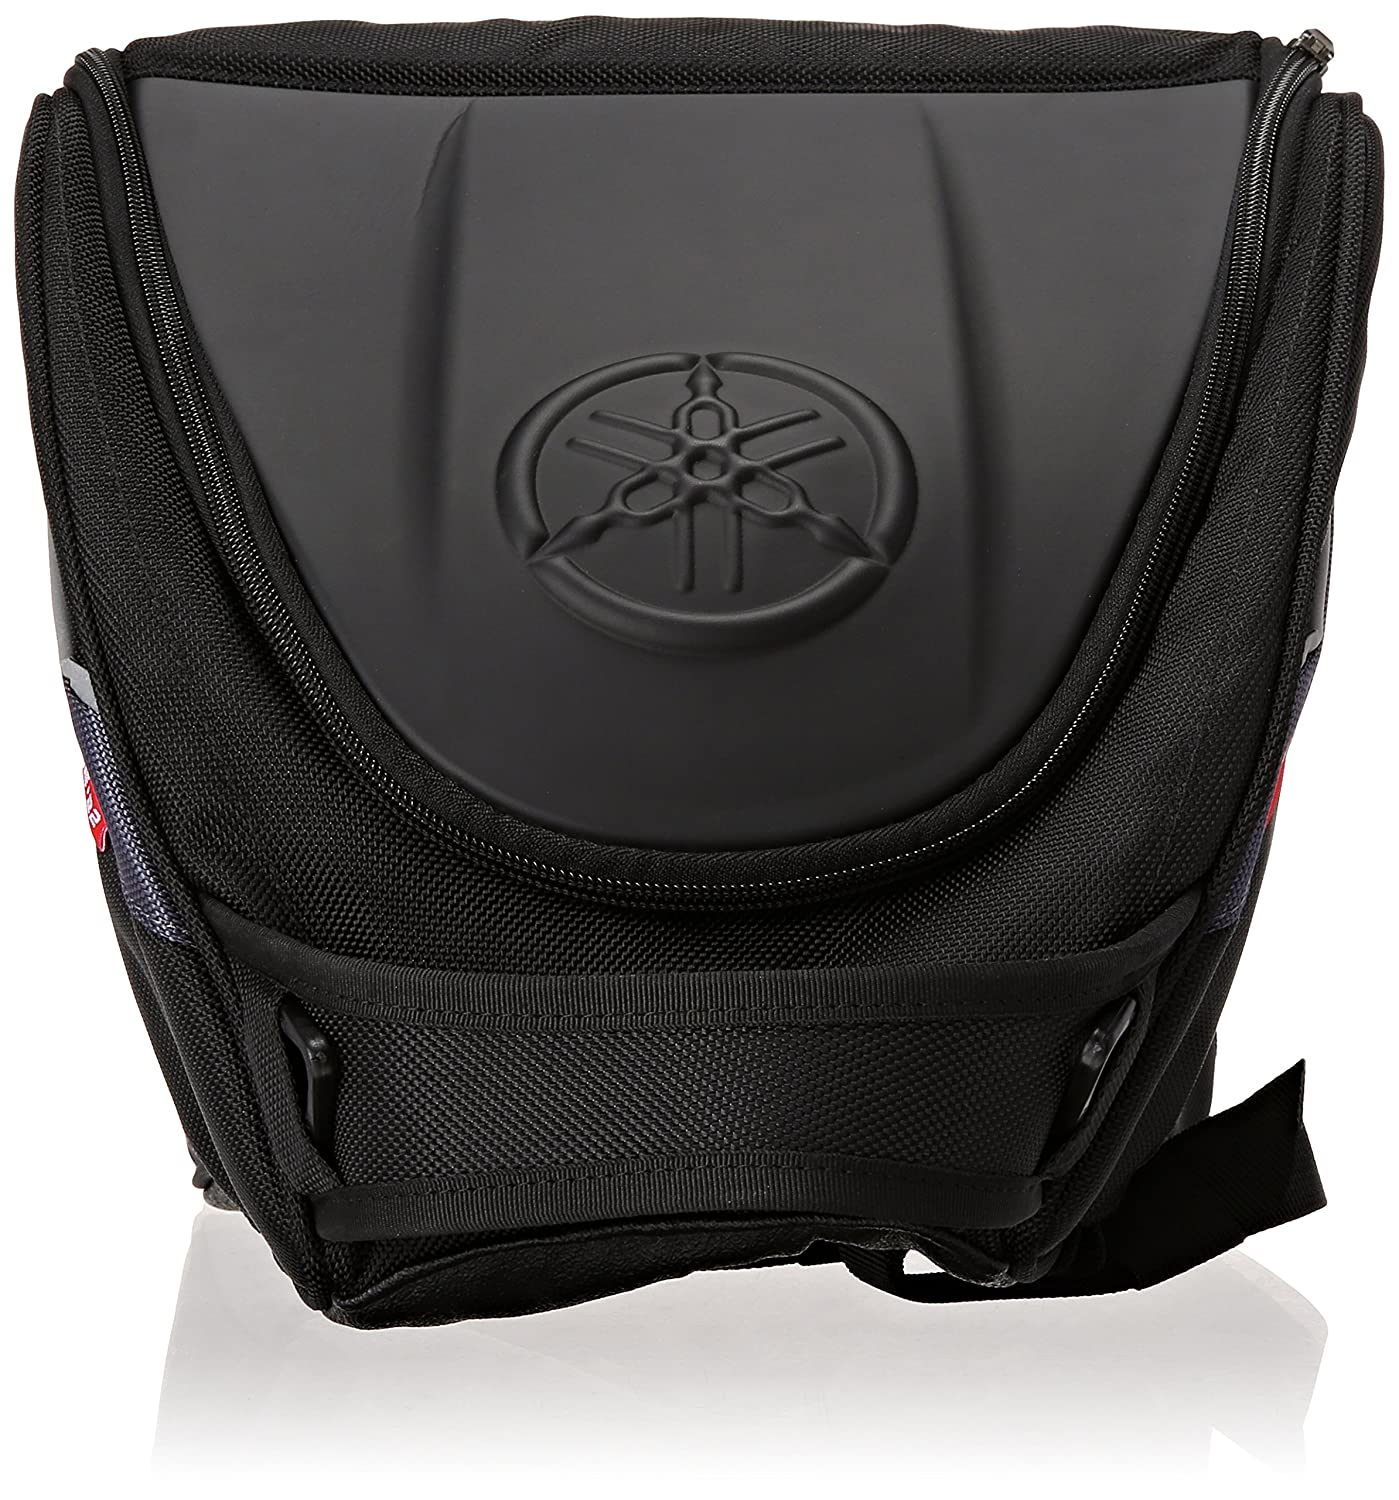 Yamaha 4B5-W0750-00-00 Console Bag for Yamaha TMAX